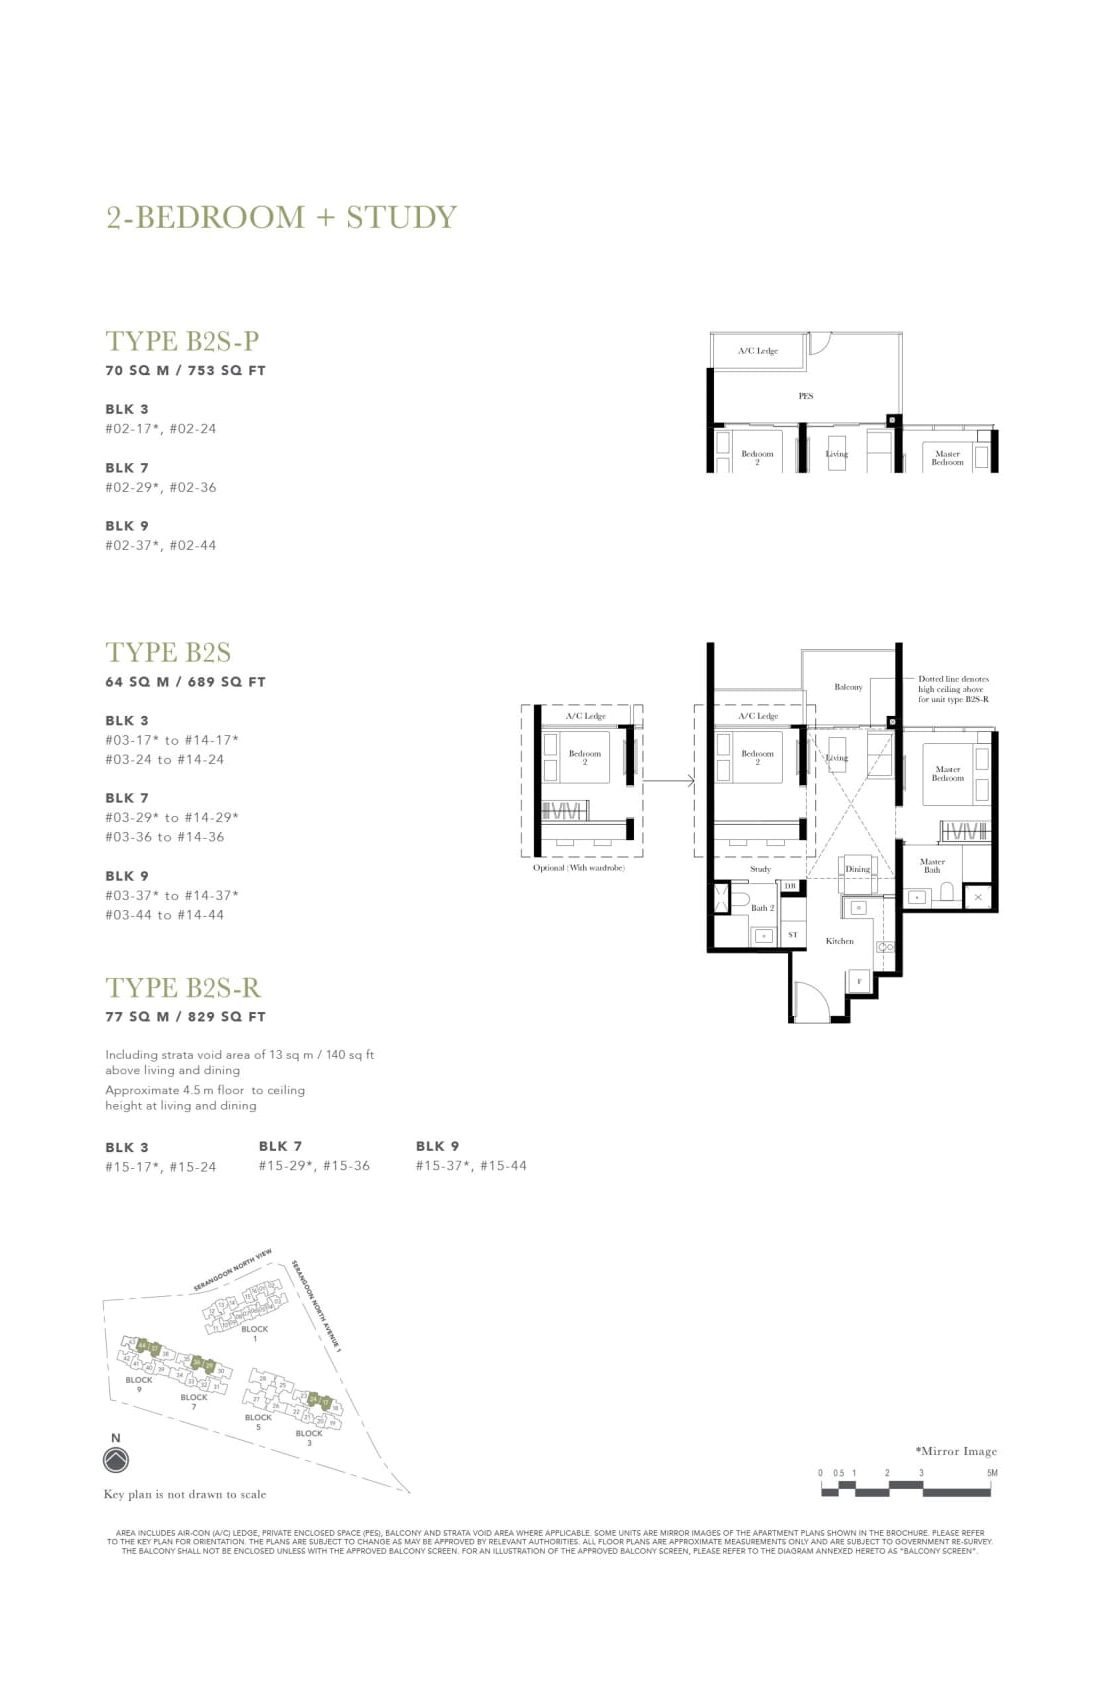 The Garden Residences' two-bedroom + study types